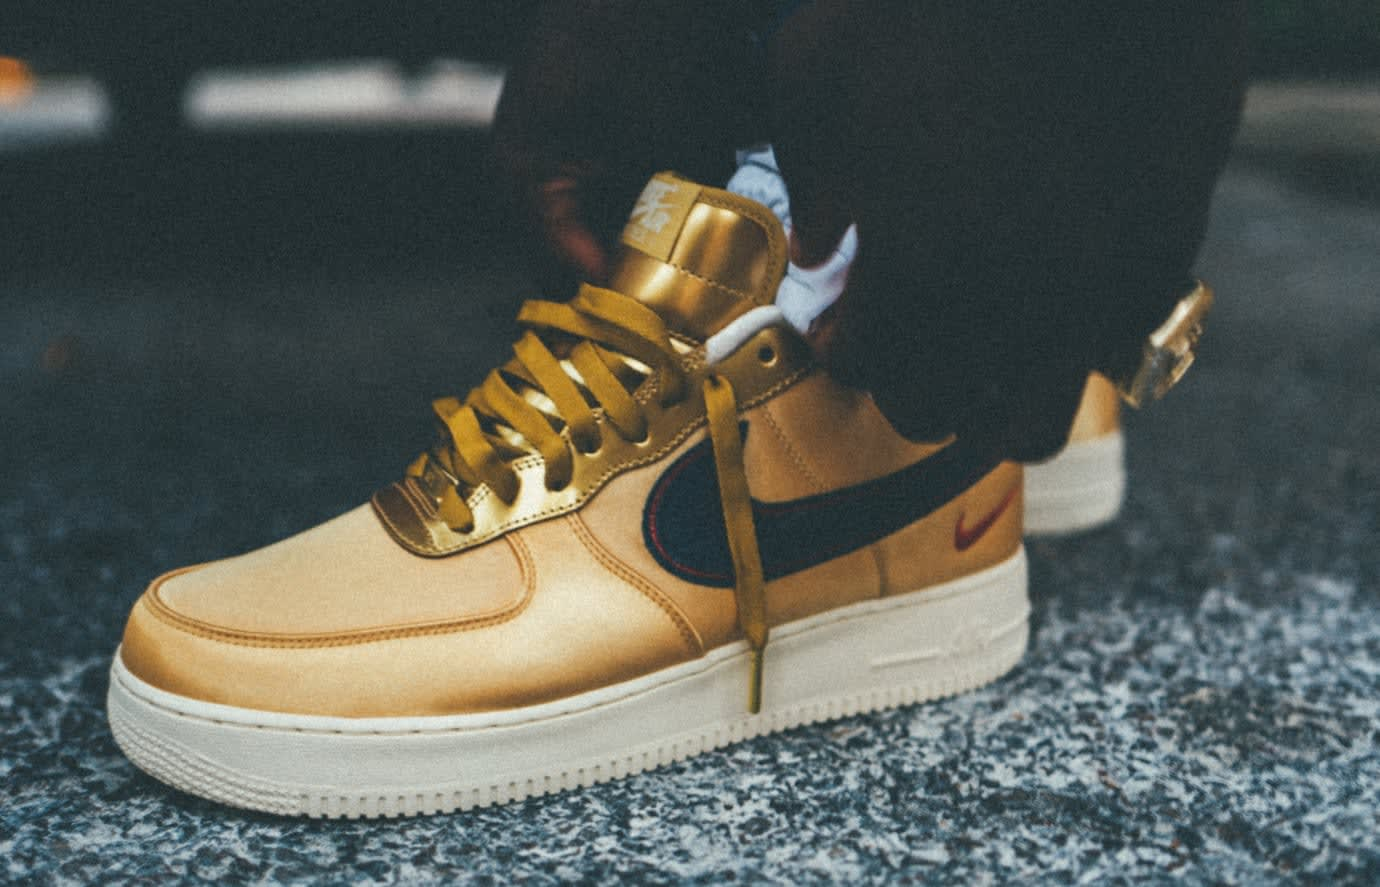 Nigel Sylvester x Nike Air Force 1 iD 'Gold'